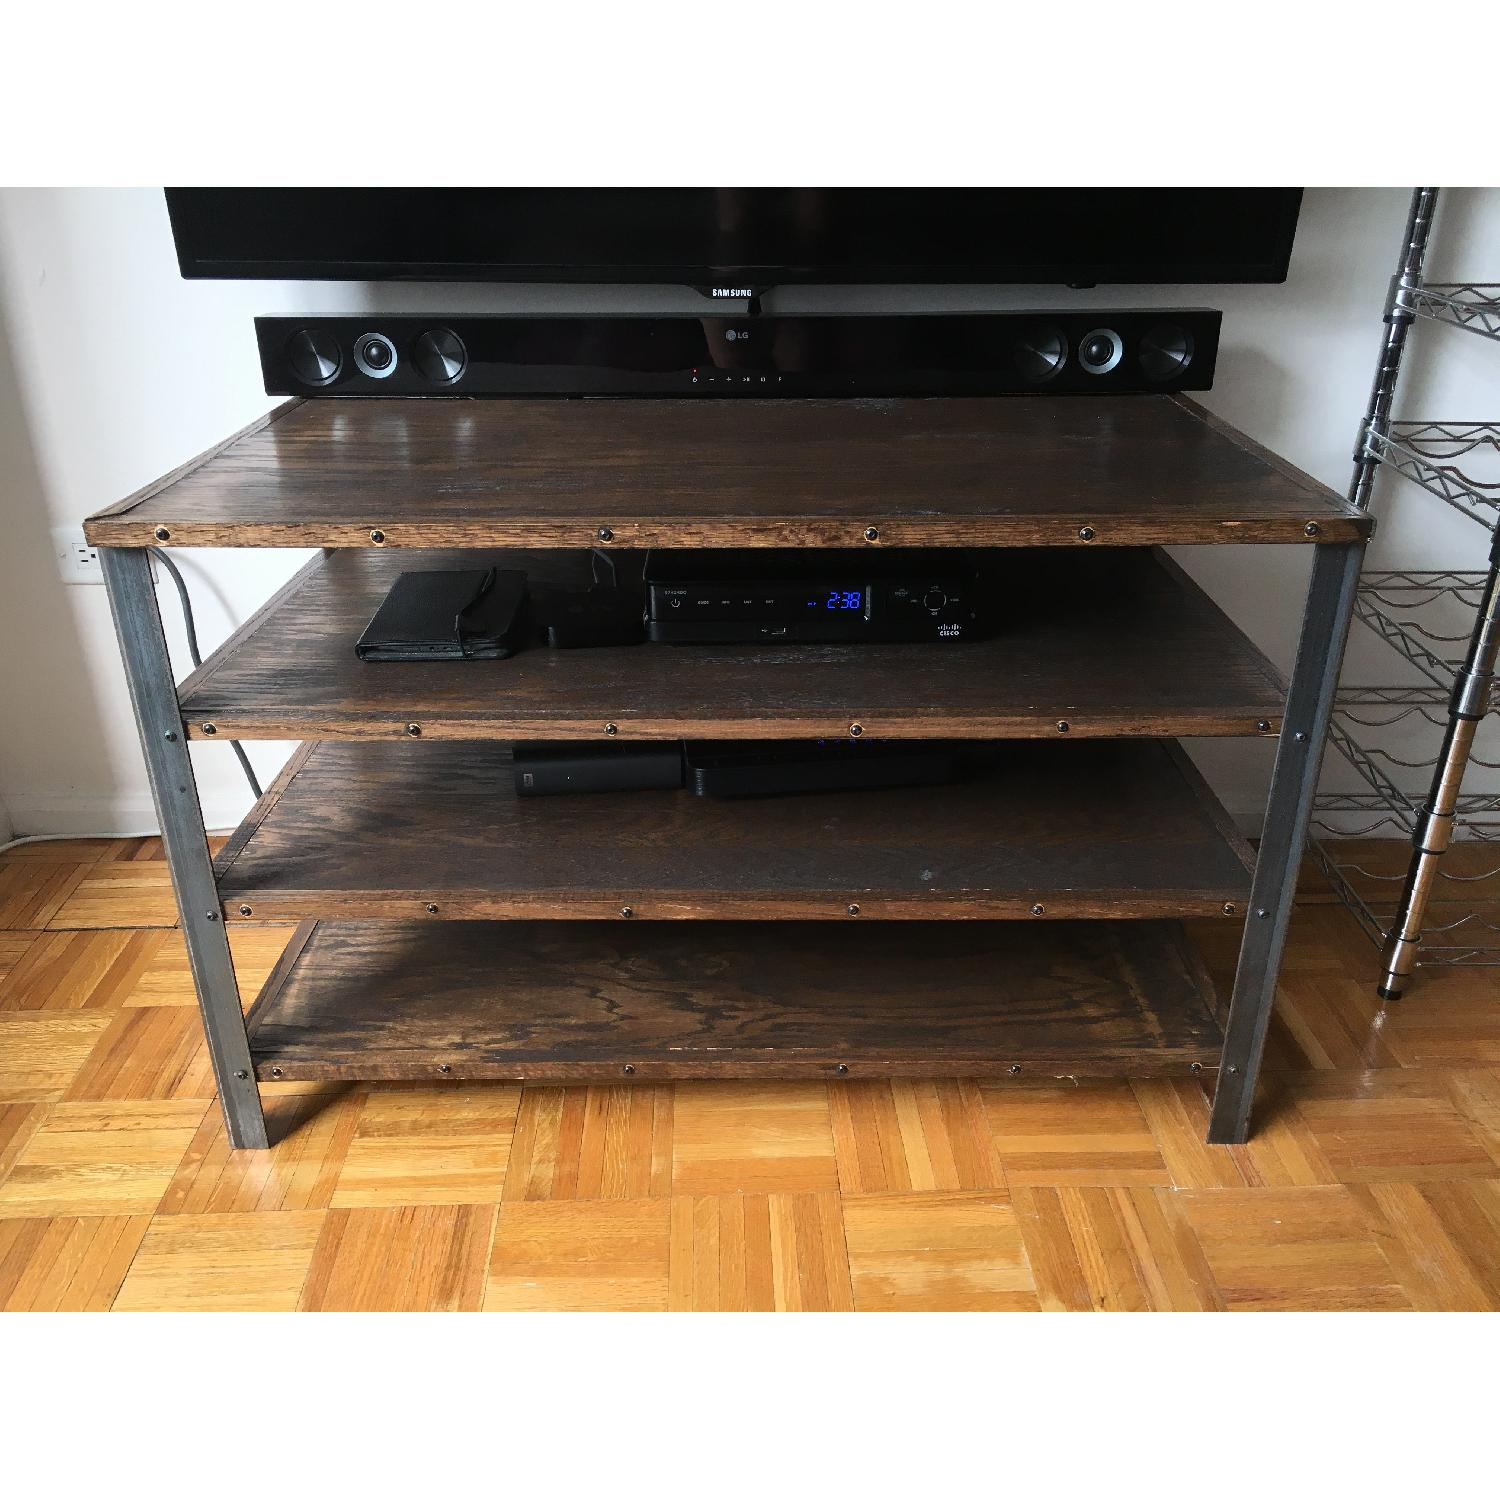 Antique Industrial Style Media Storage Shelves - image-2